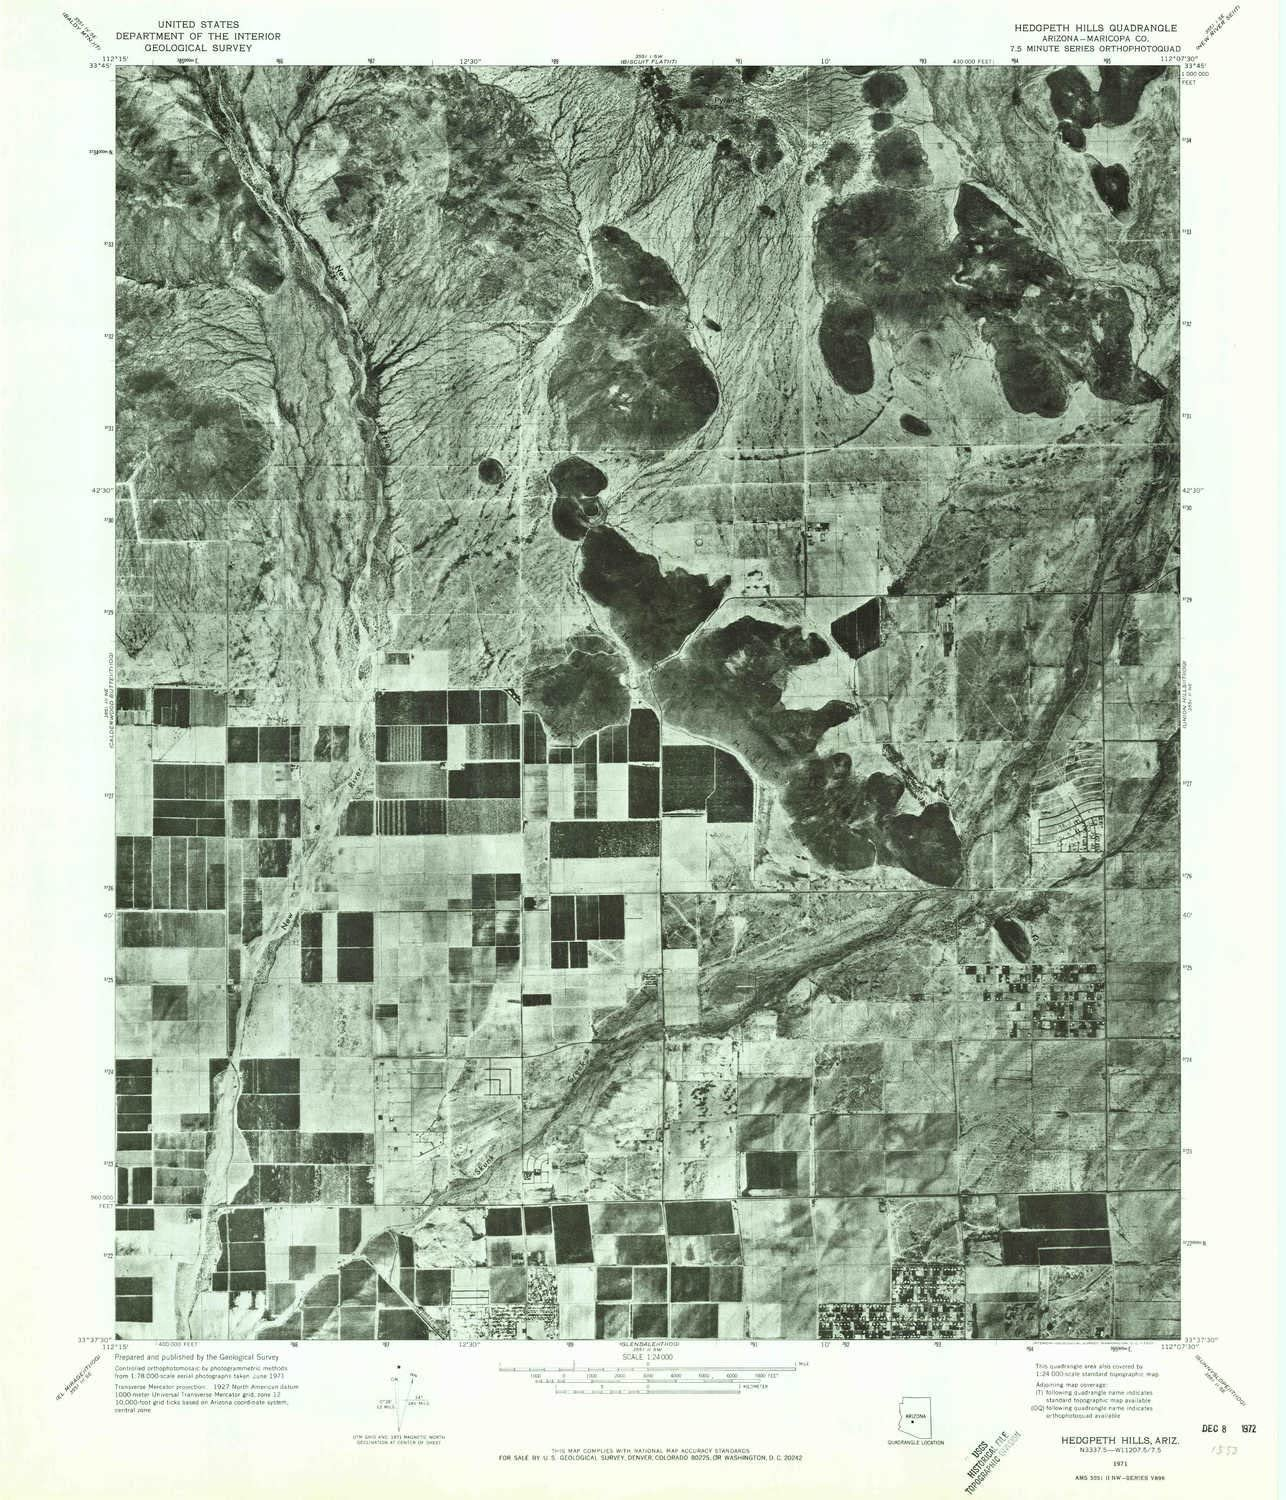 YellowMaps Online limited product Hedgpeth Hills AZ topo X 7.5 map 1:24000 Max 43% OFF Scale